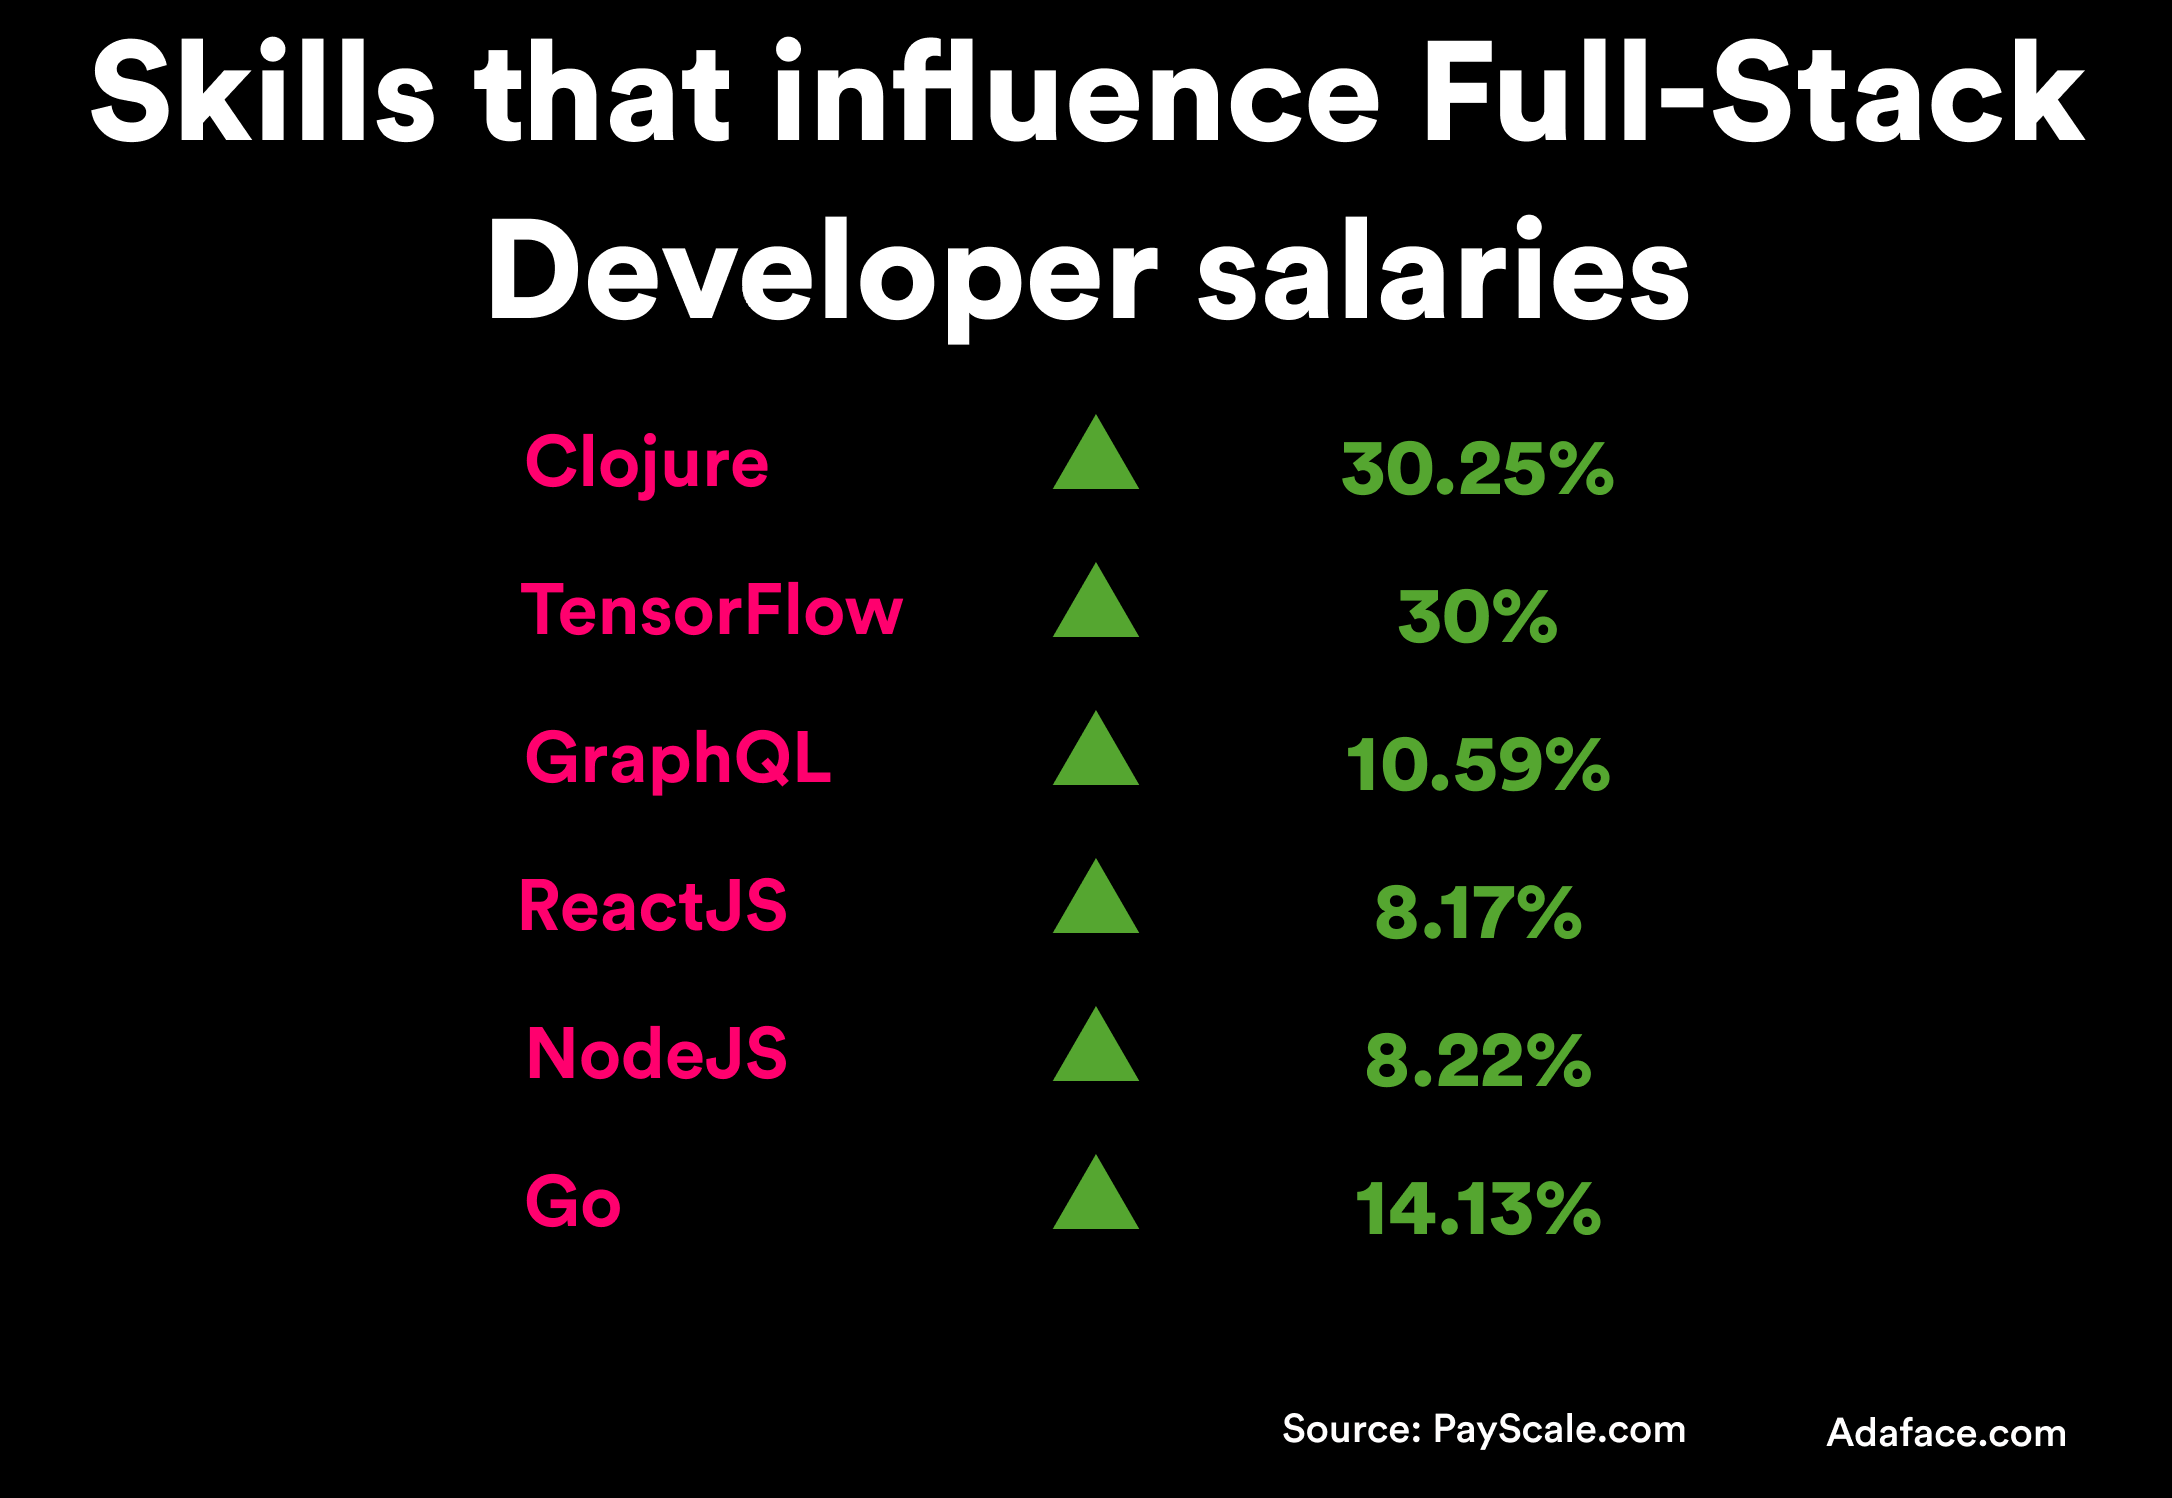 Pay by Skills of Full-Stack developers - Adaface salary guide